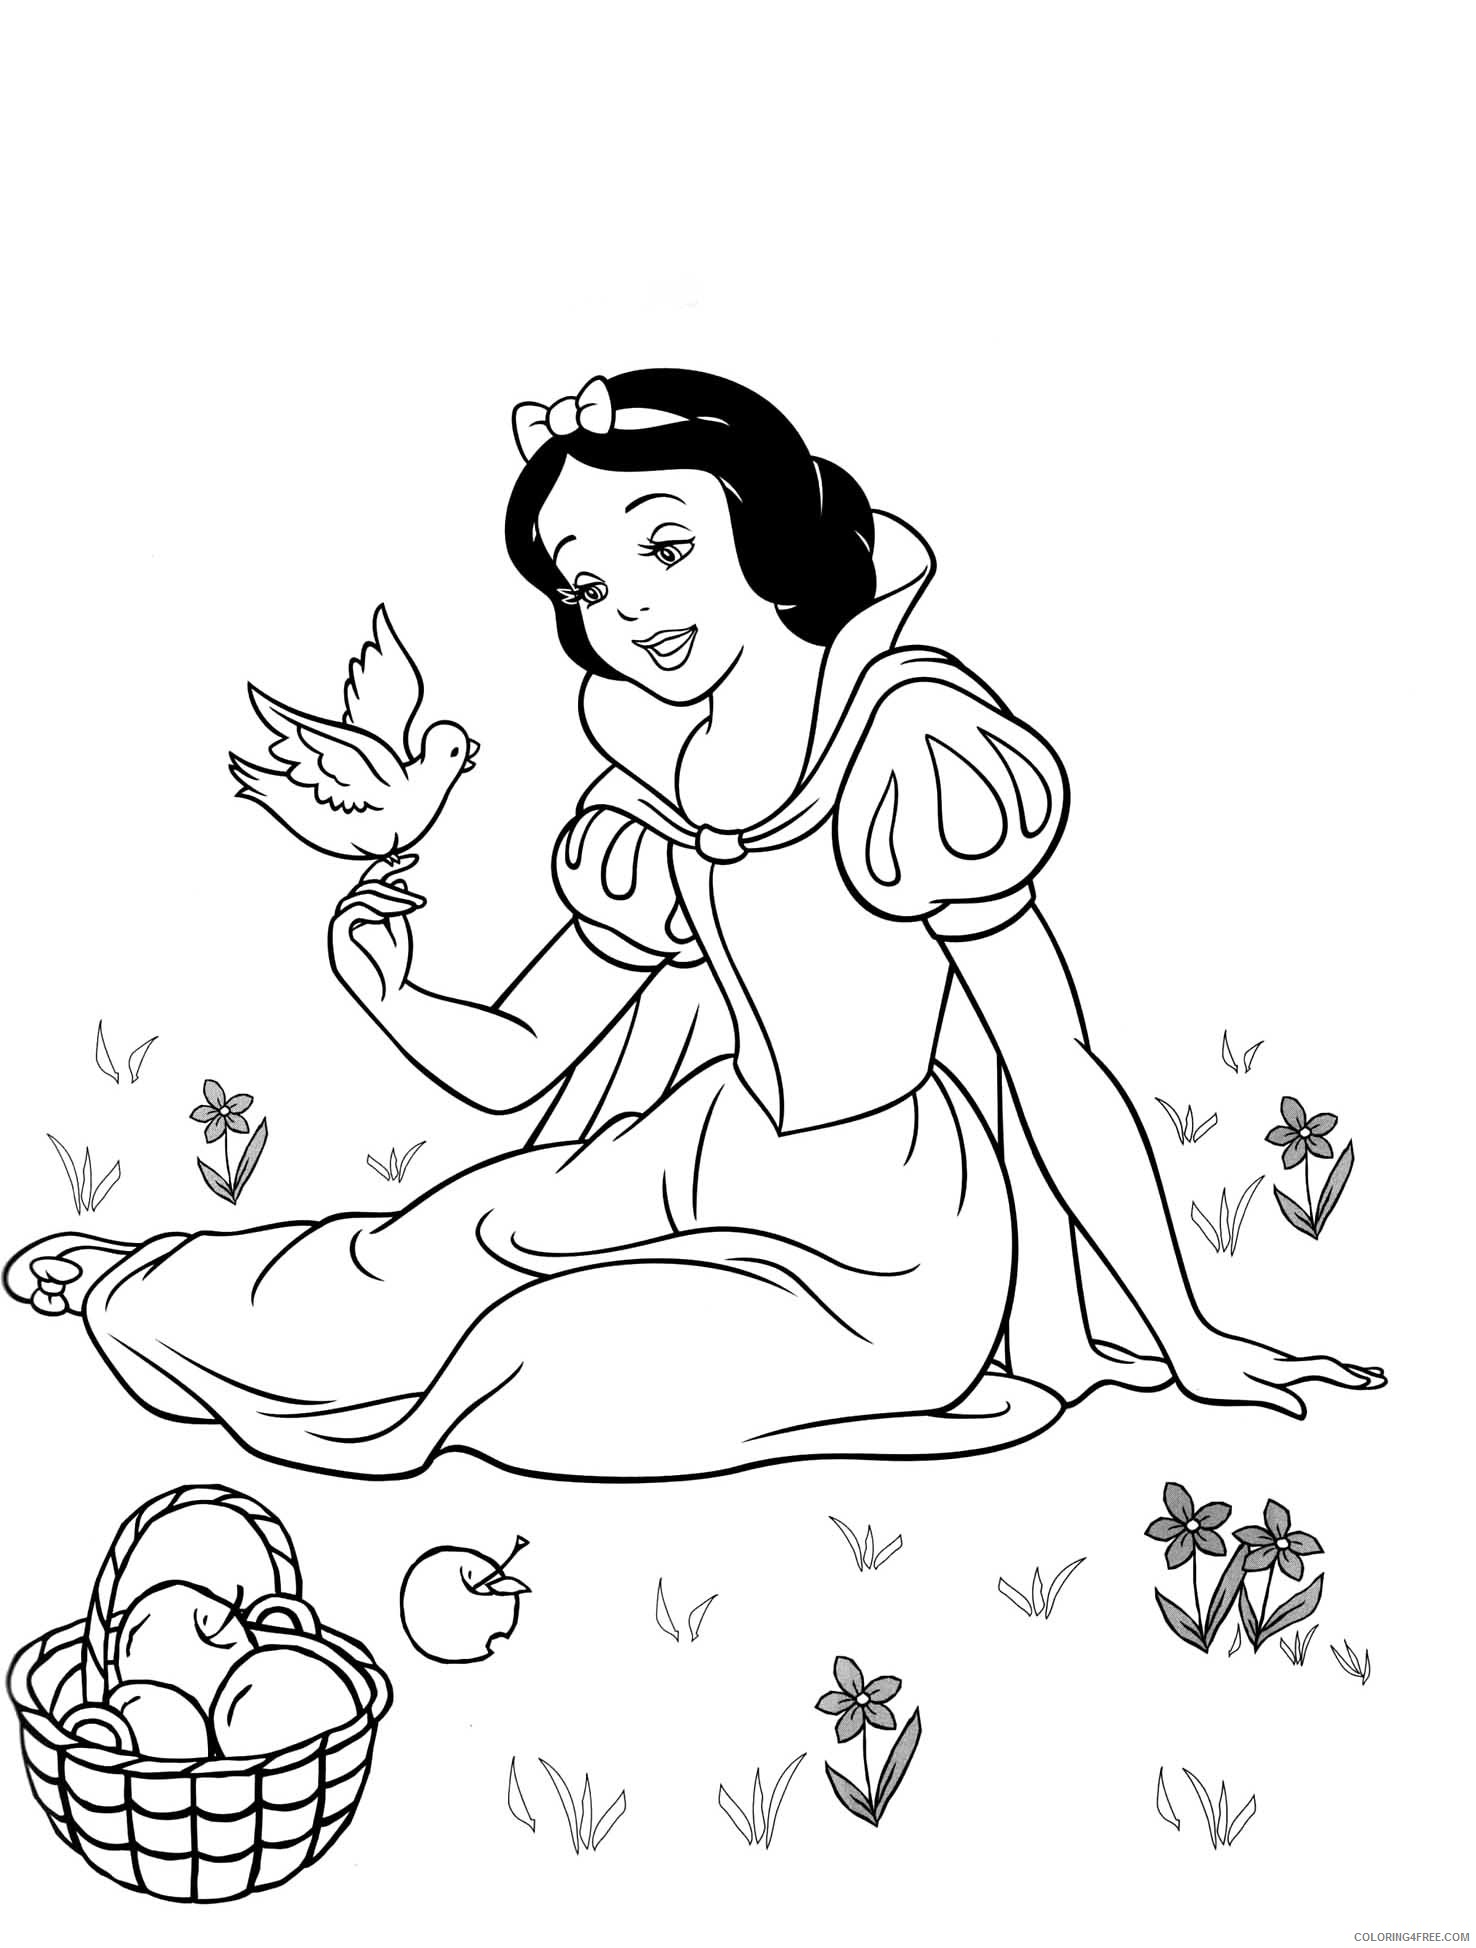 snow white coloring pages free to print Coloring4free